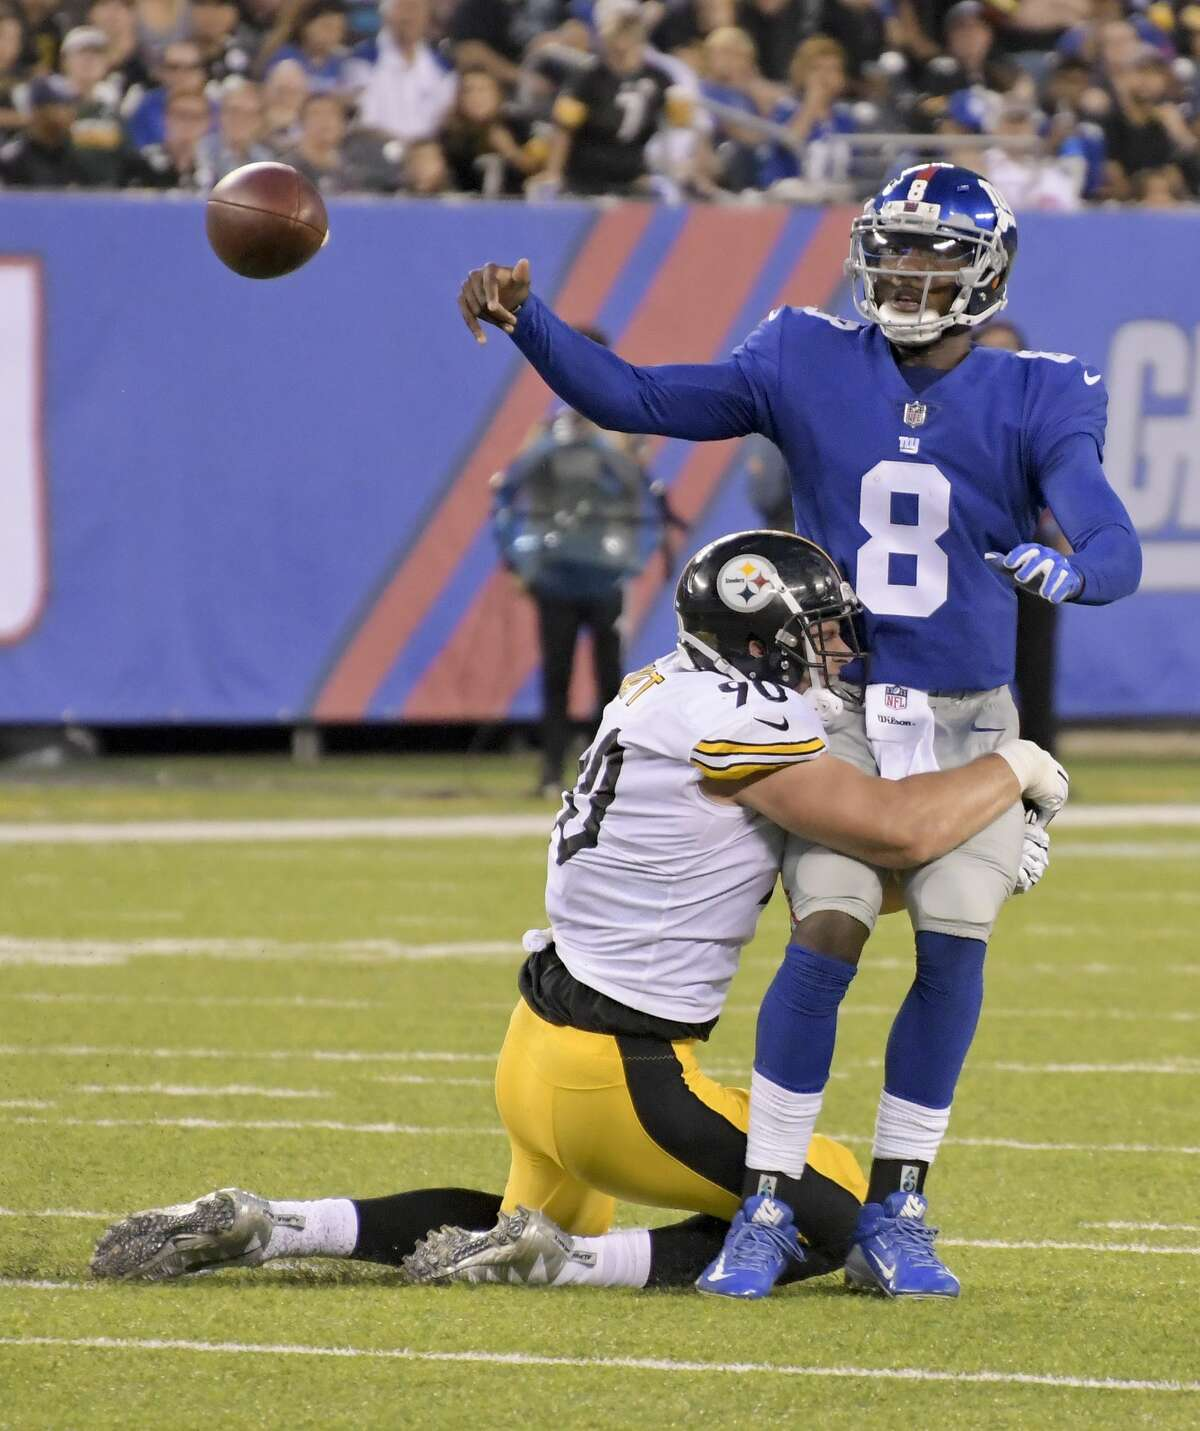 New York Giants quarterback Josh Johnson (8) throws the ball as he is hit by Pittsburgh Steelers linebacker T.J. Watt (90) during the second quarter of a preseason NFL football game, Friday, Aug. 11, 2017, in East Rutherford, N.J. (AP Photo/Bill Kostroun)